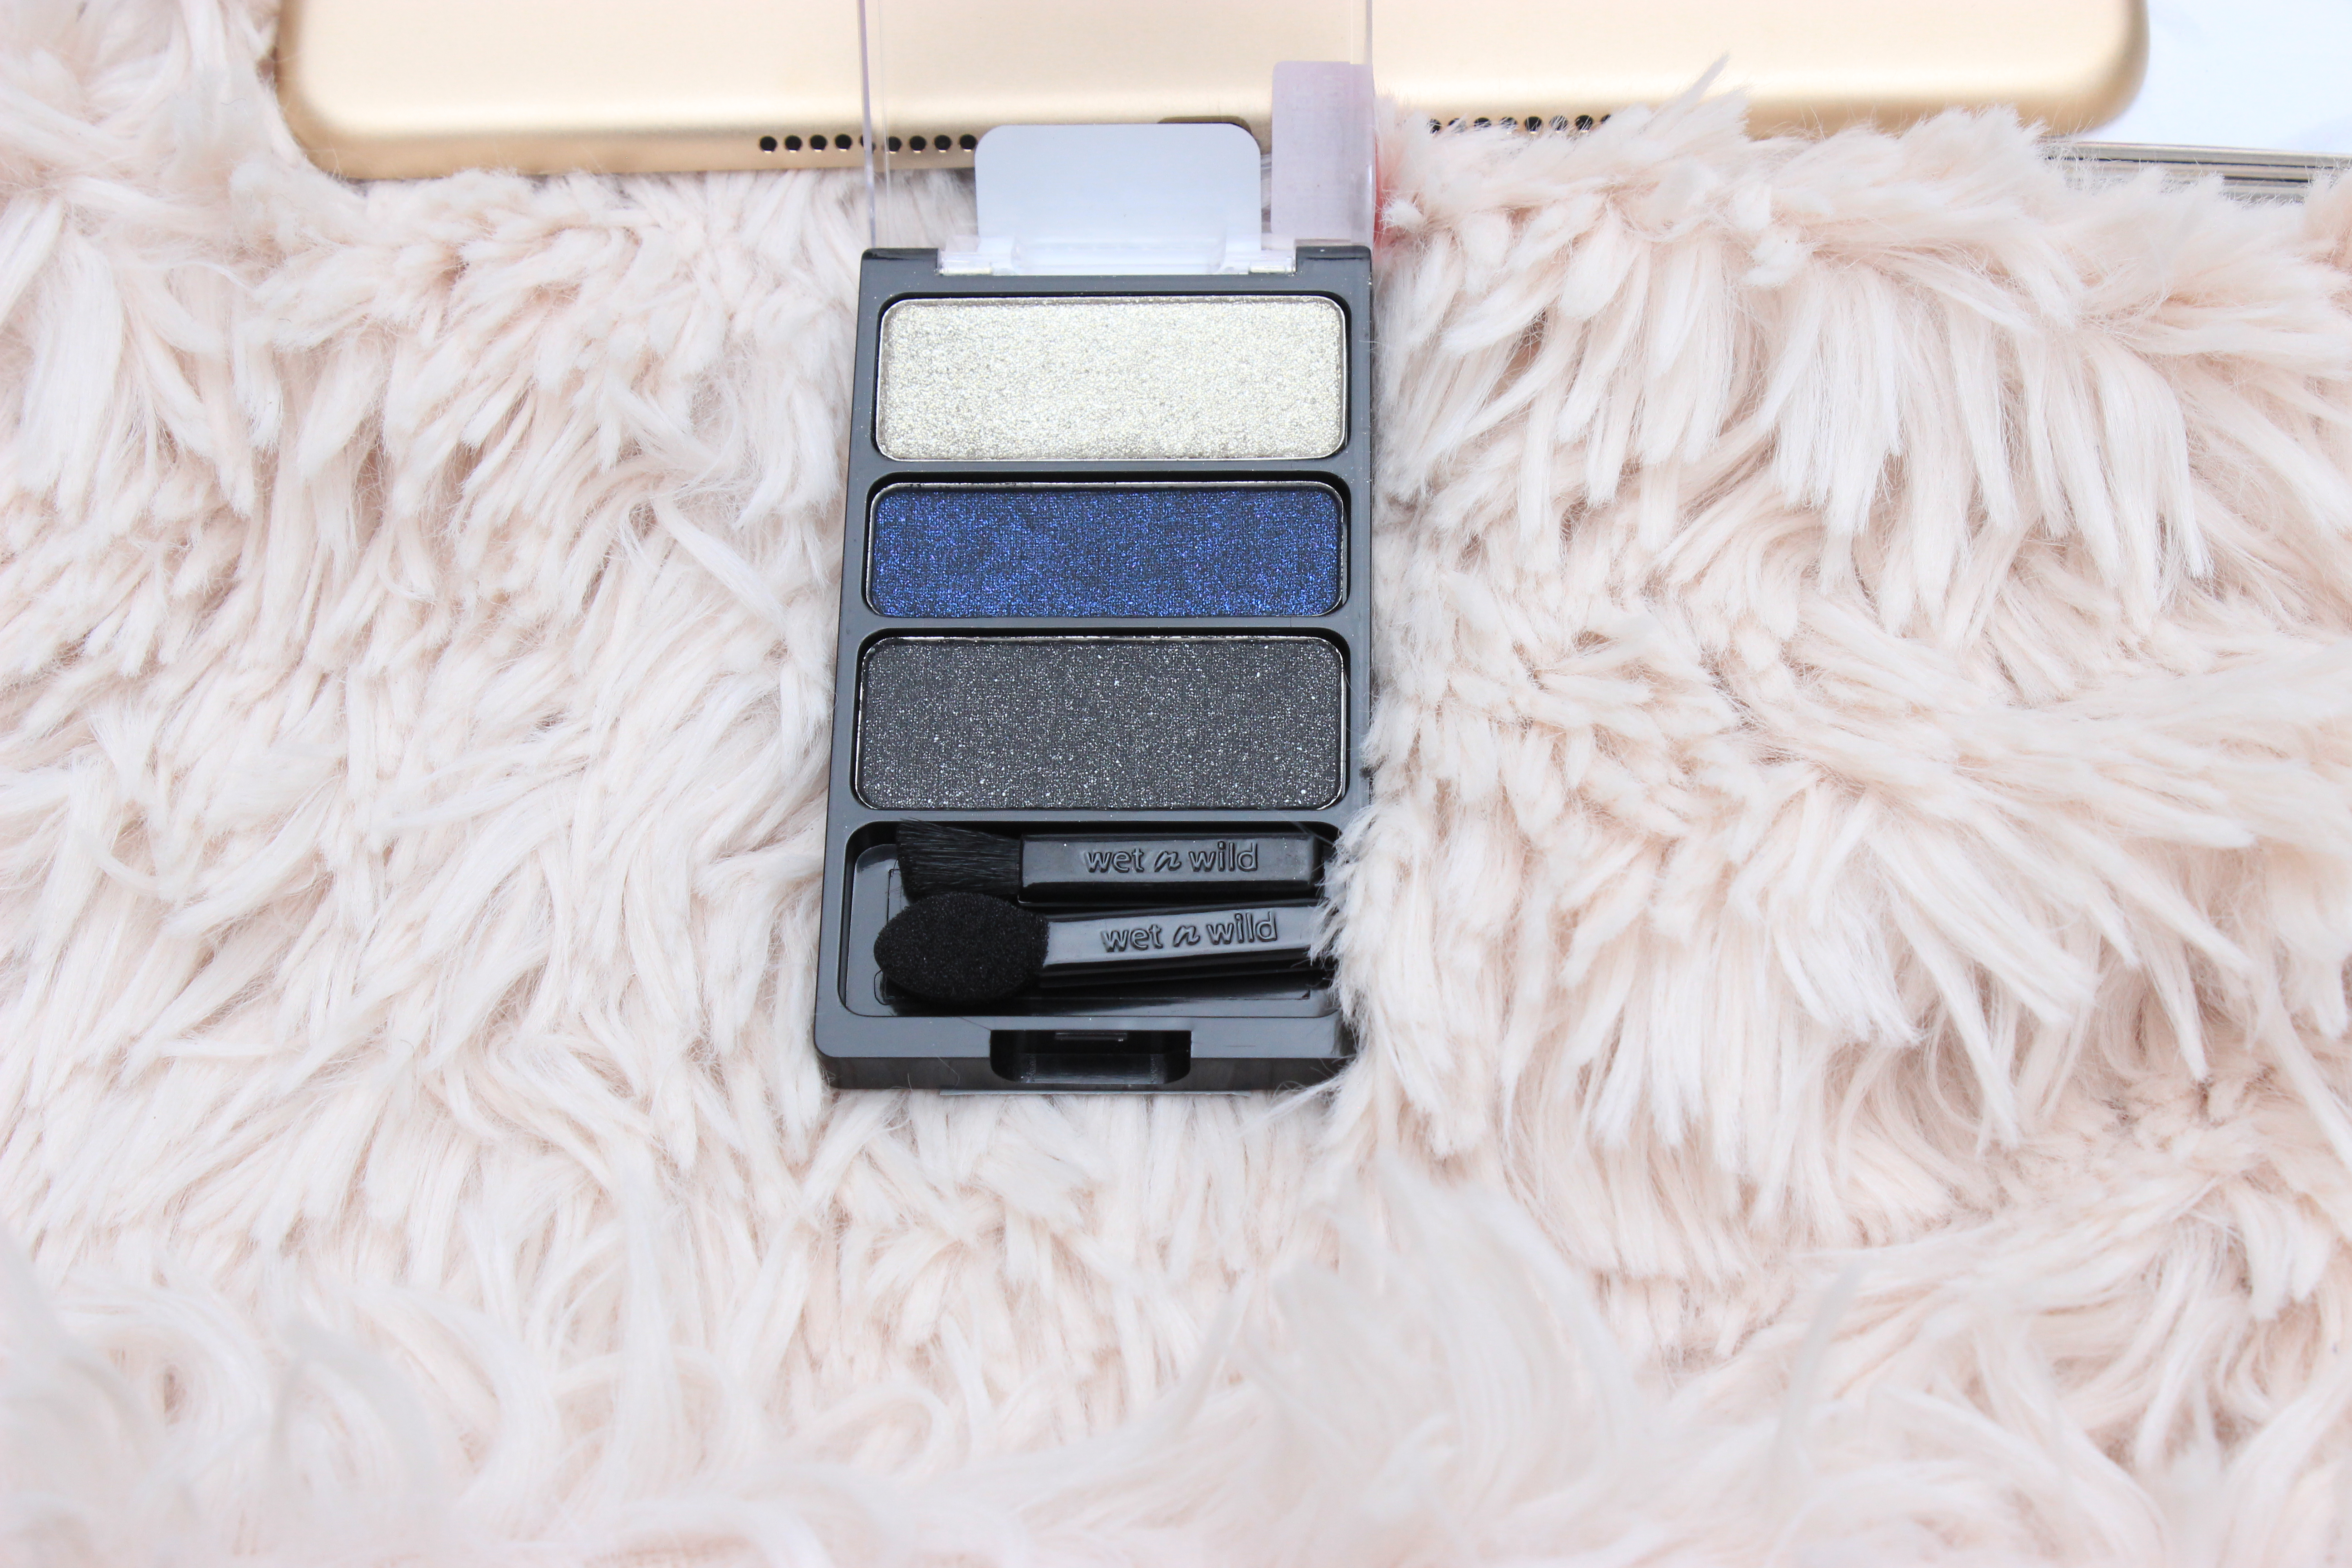 WetnWild-eyeshadow-palette- wrappers-delight- swatches- WetnWild-eyeshadow-palette-plaid-to-the-bone-eyeshadow-makeup-review- WetnWild-eyeshadow-palette-bust-a-wrap-review-oohlalablog-6